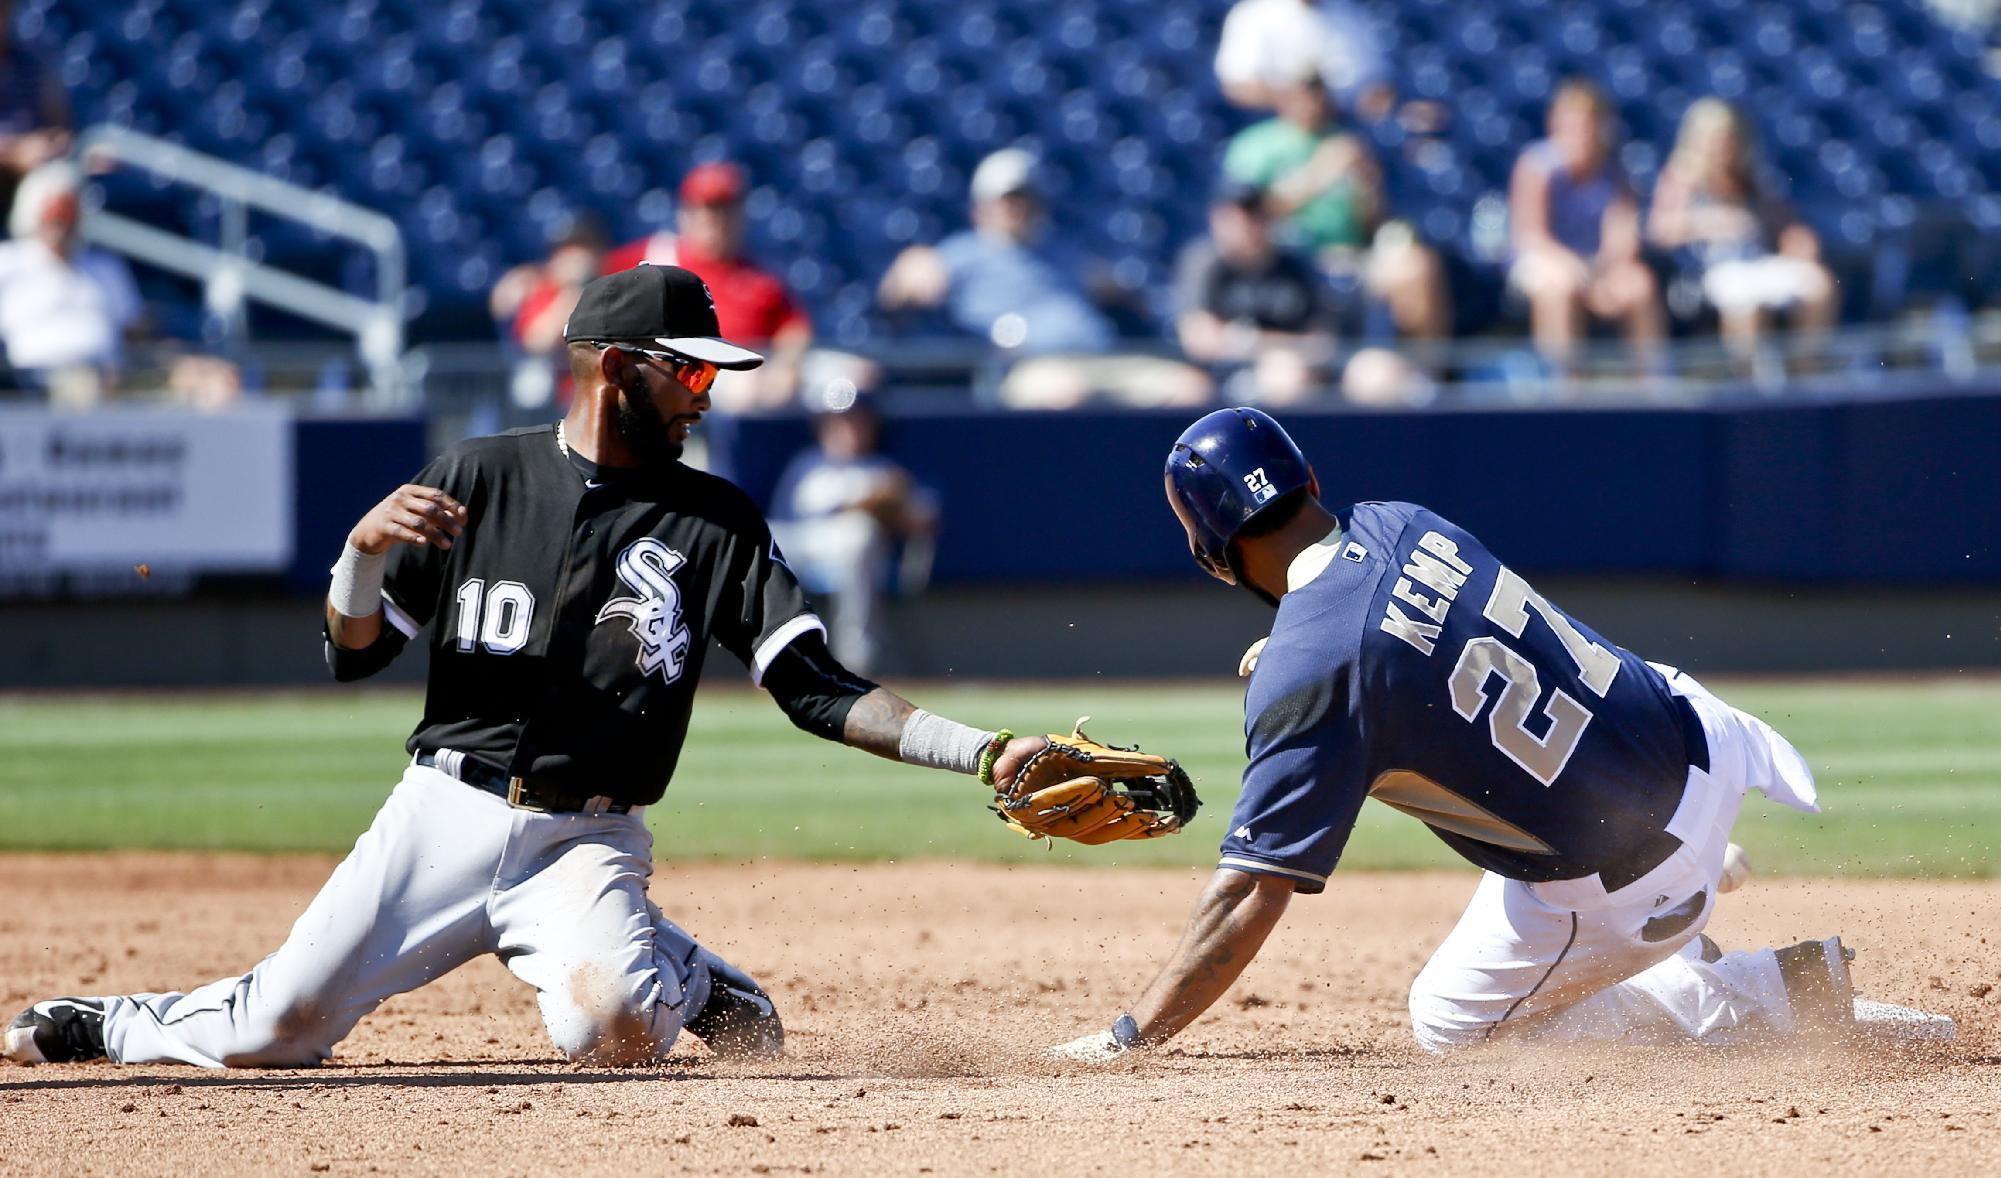 White Sox lose in ninth after failing to challenge a blown call at second